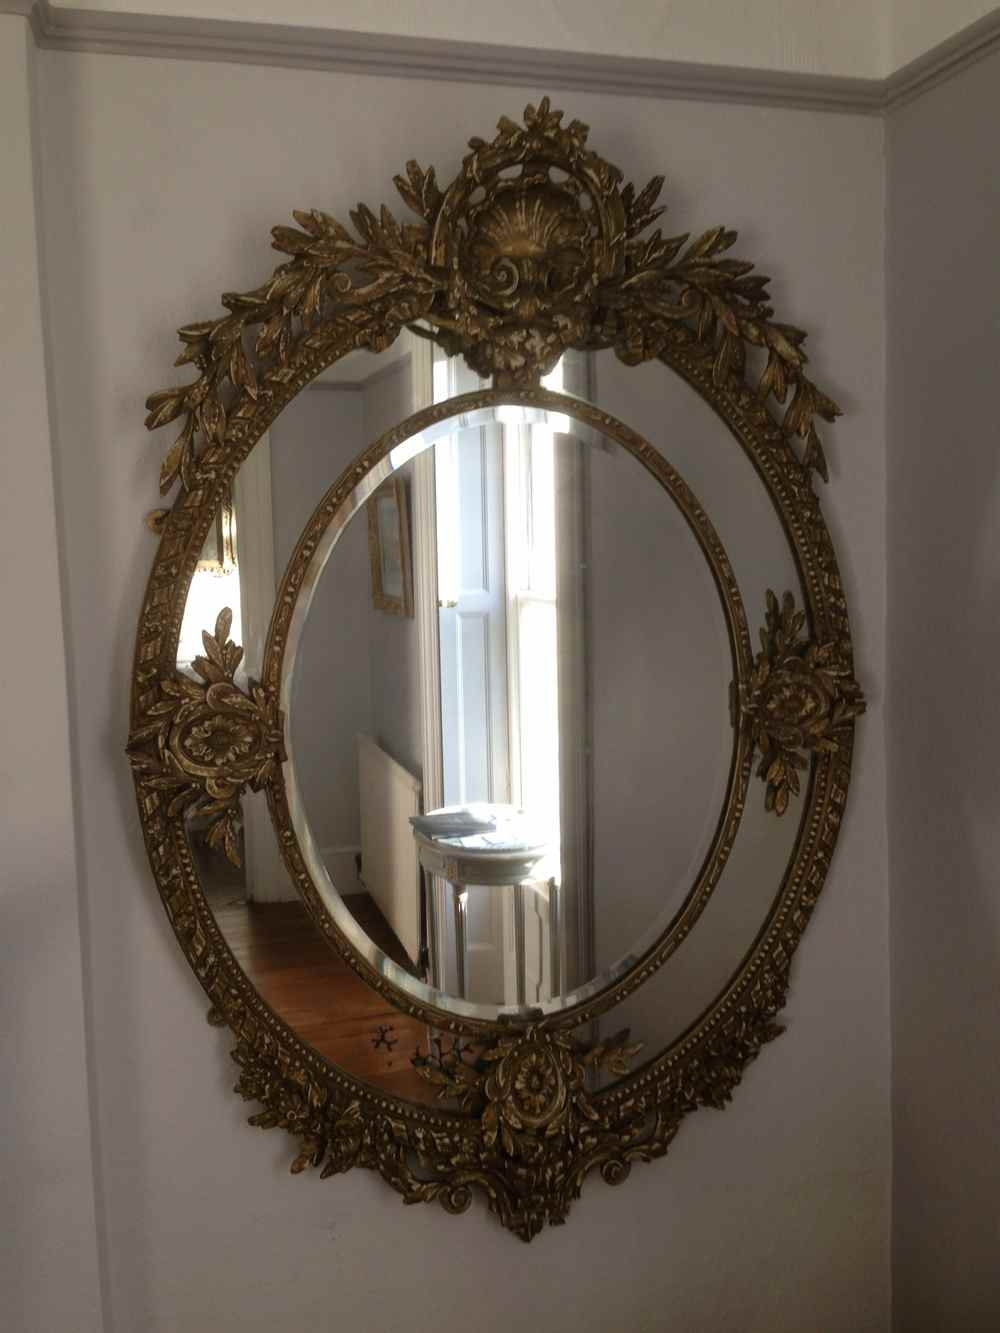 A Wonderful Large Antique 19th Century French Carved Wood Oval Regarding Ornate Antique Mirrors (Image 1 of 14)